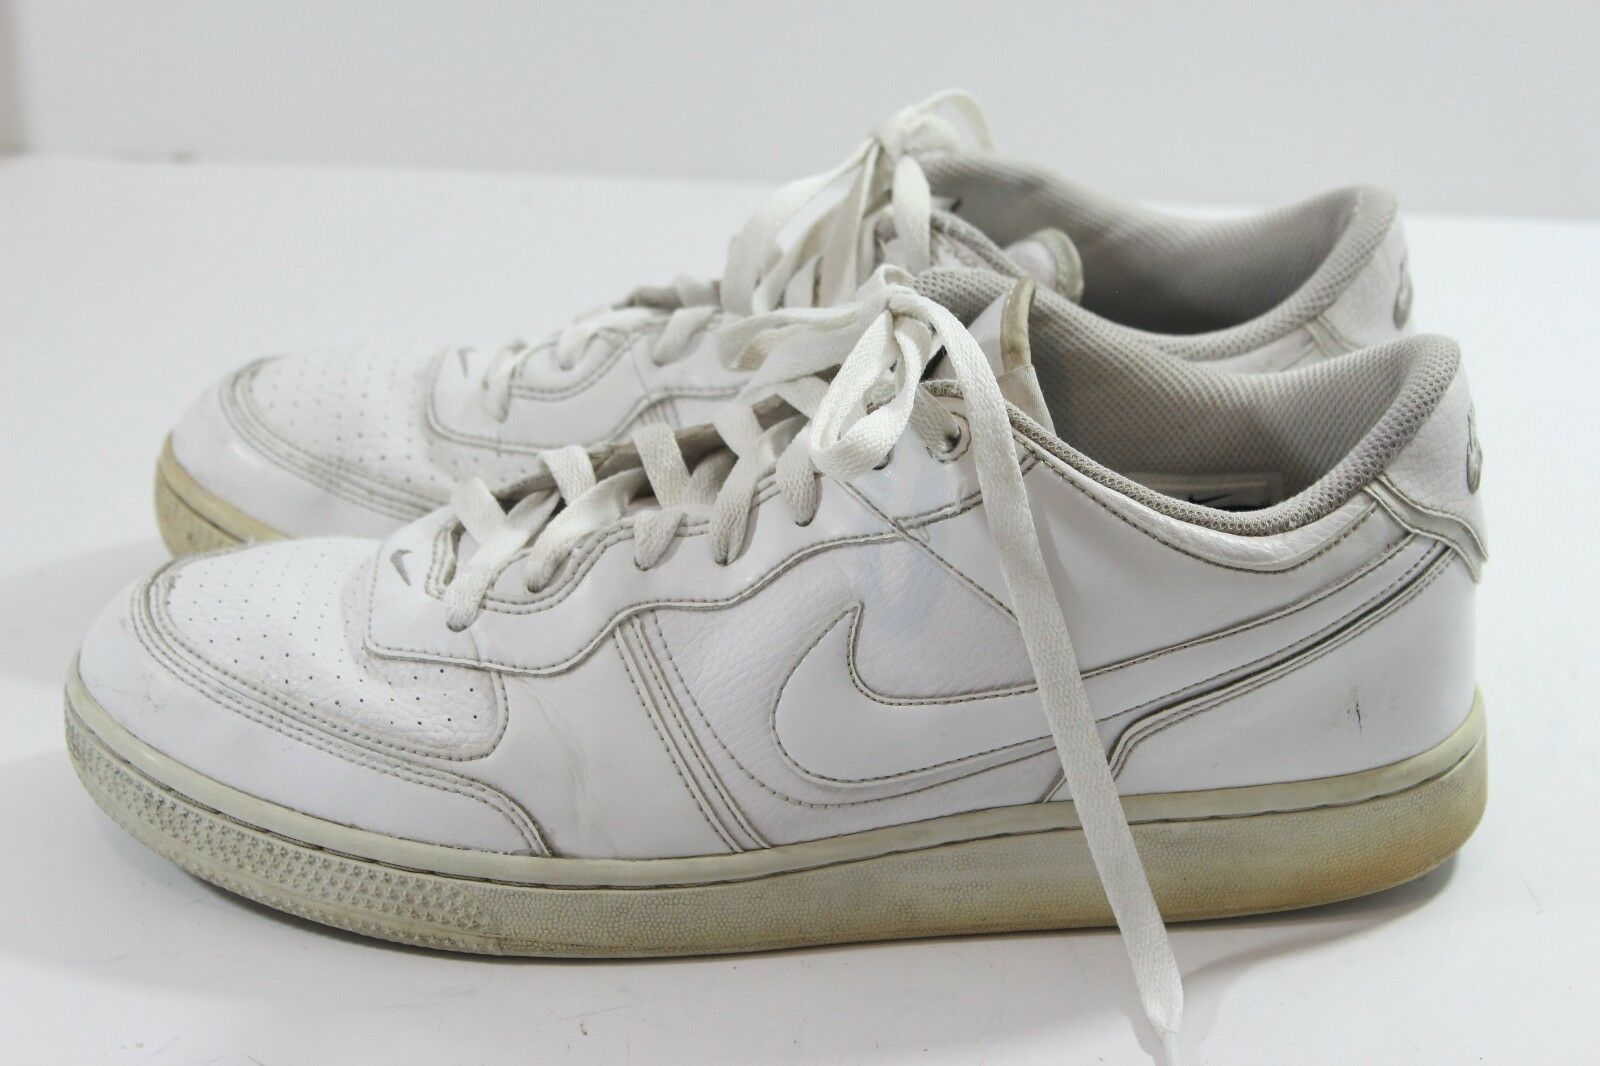 NIKE Style 396667-100  White Sneakers Shoes Men Comfortable Seasonal price cuts, discount benefits